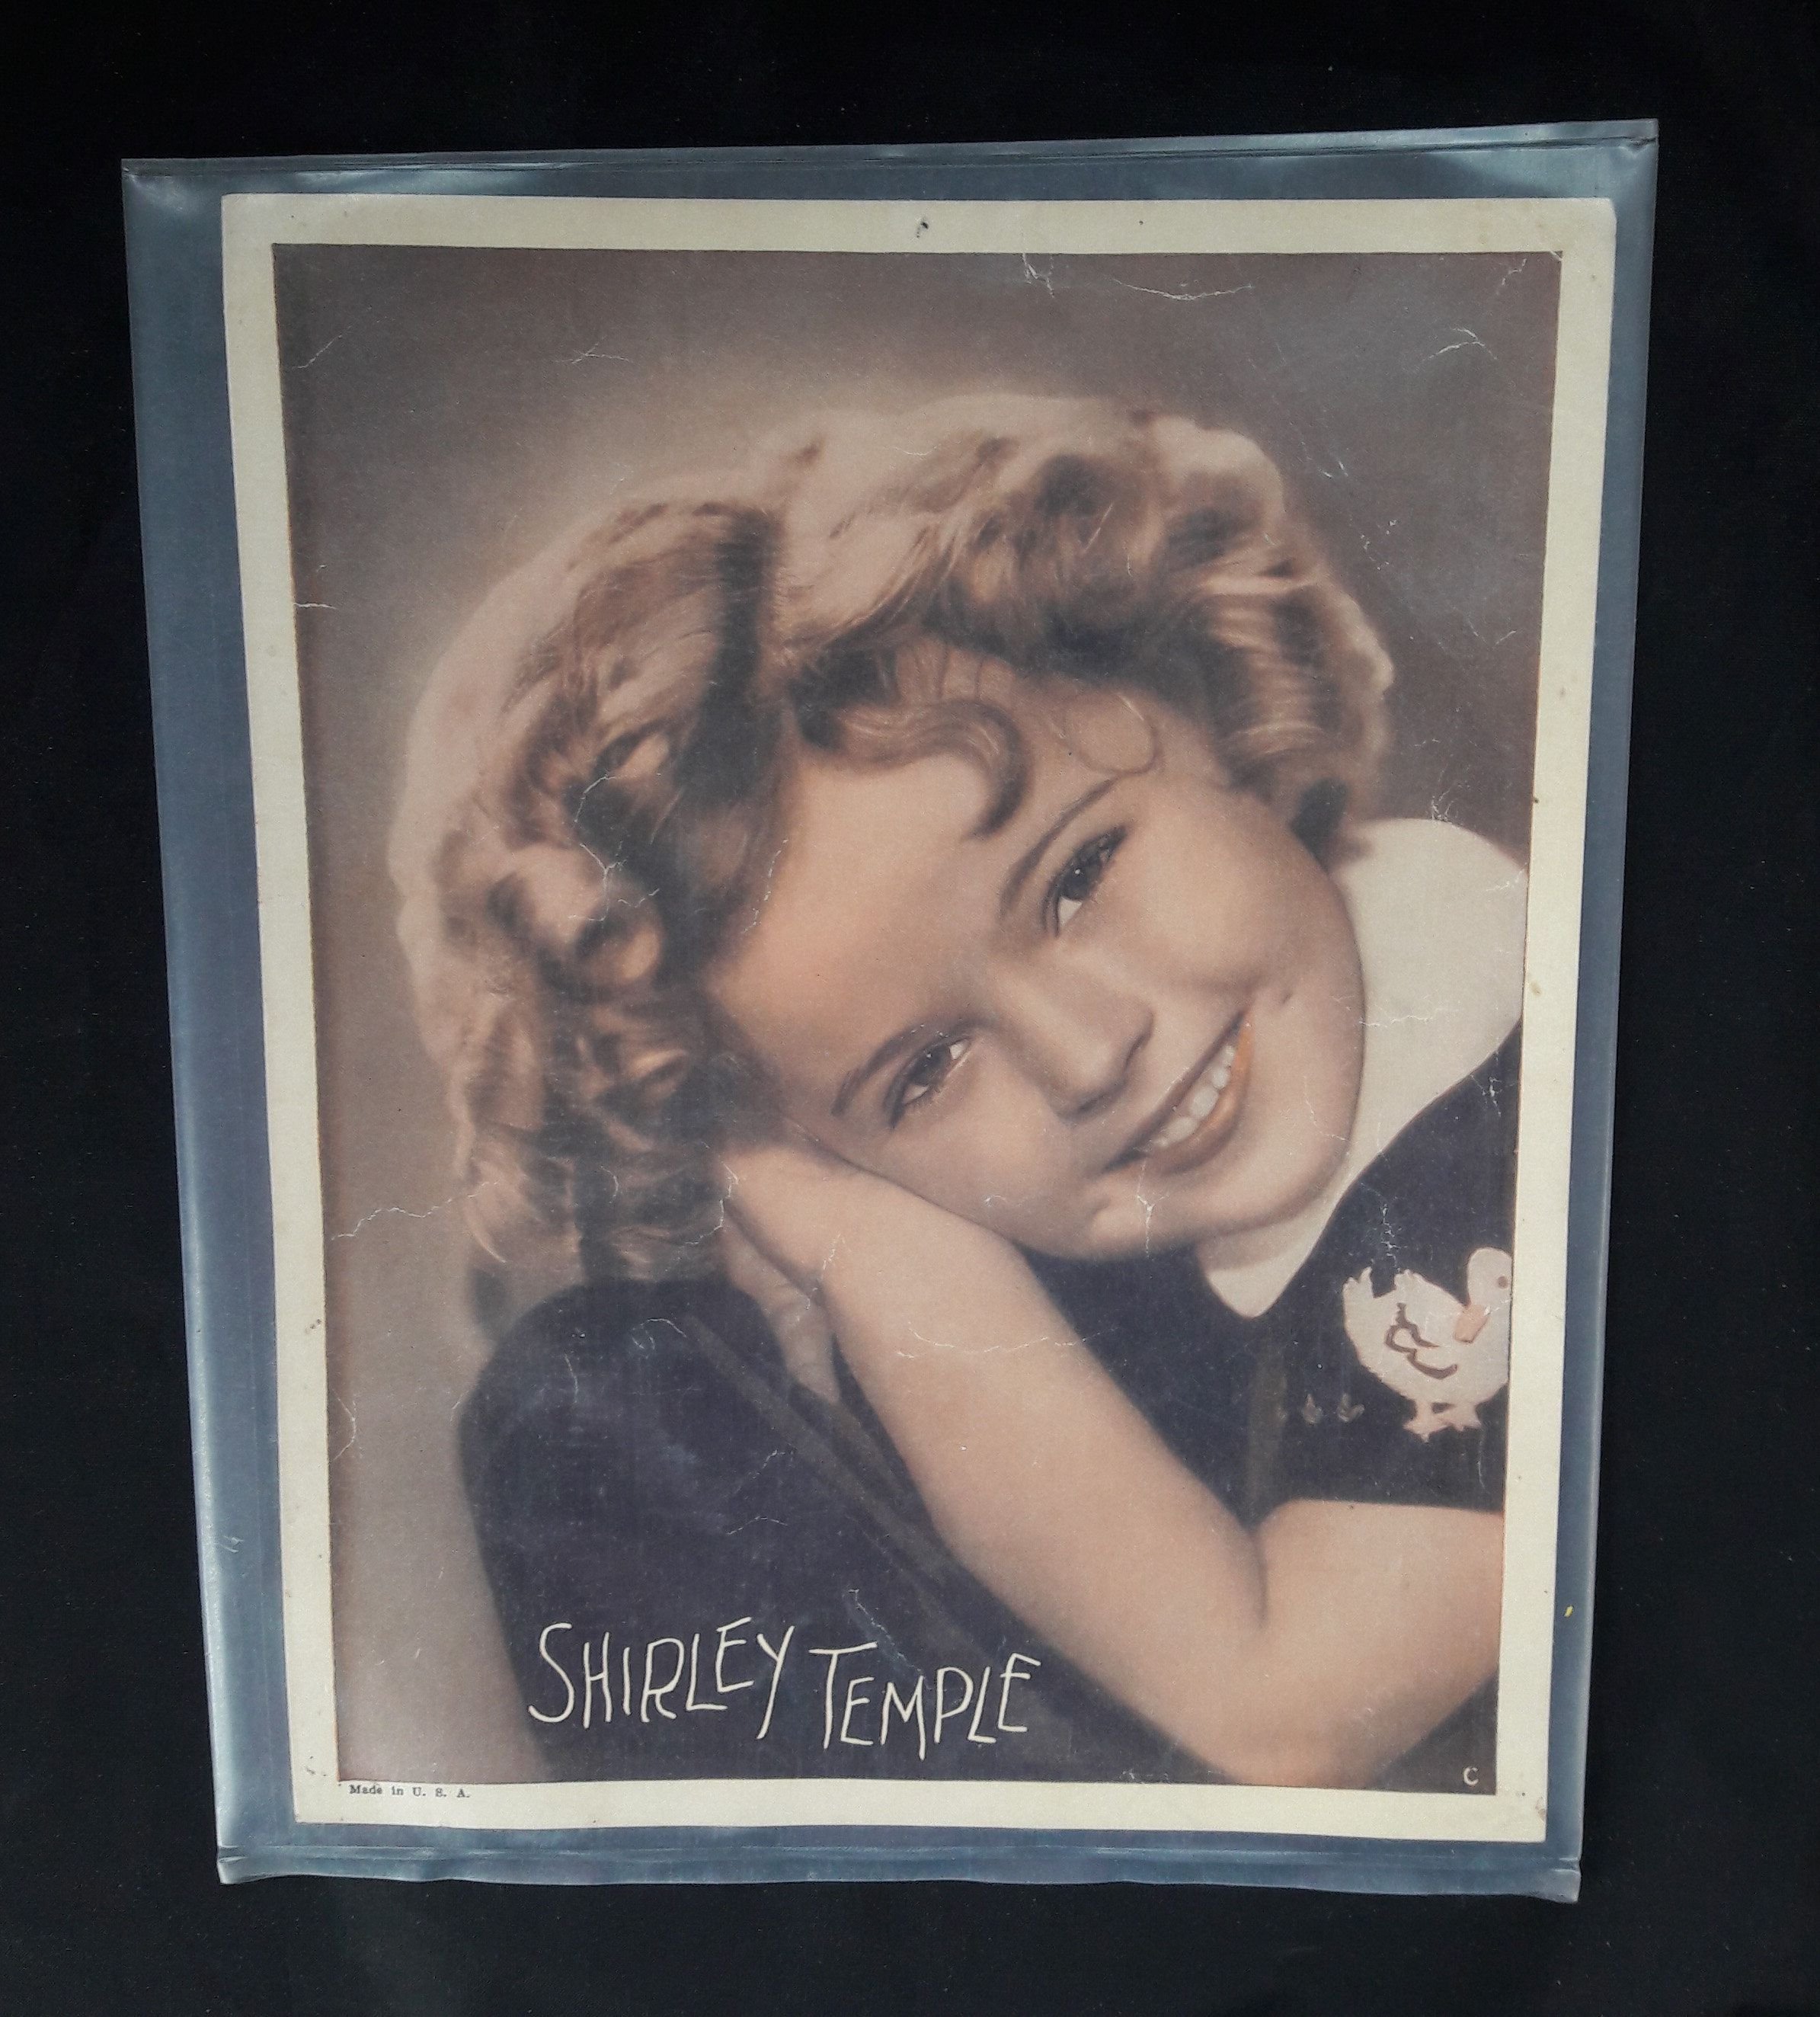 Vintage Color Photograph of Shirley Temple | Publicity Photo in a Plastic Sleeve | Golden Age of Hollywood Actress #hollywoodgoldenage